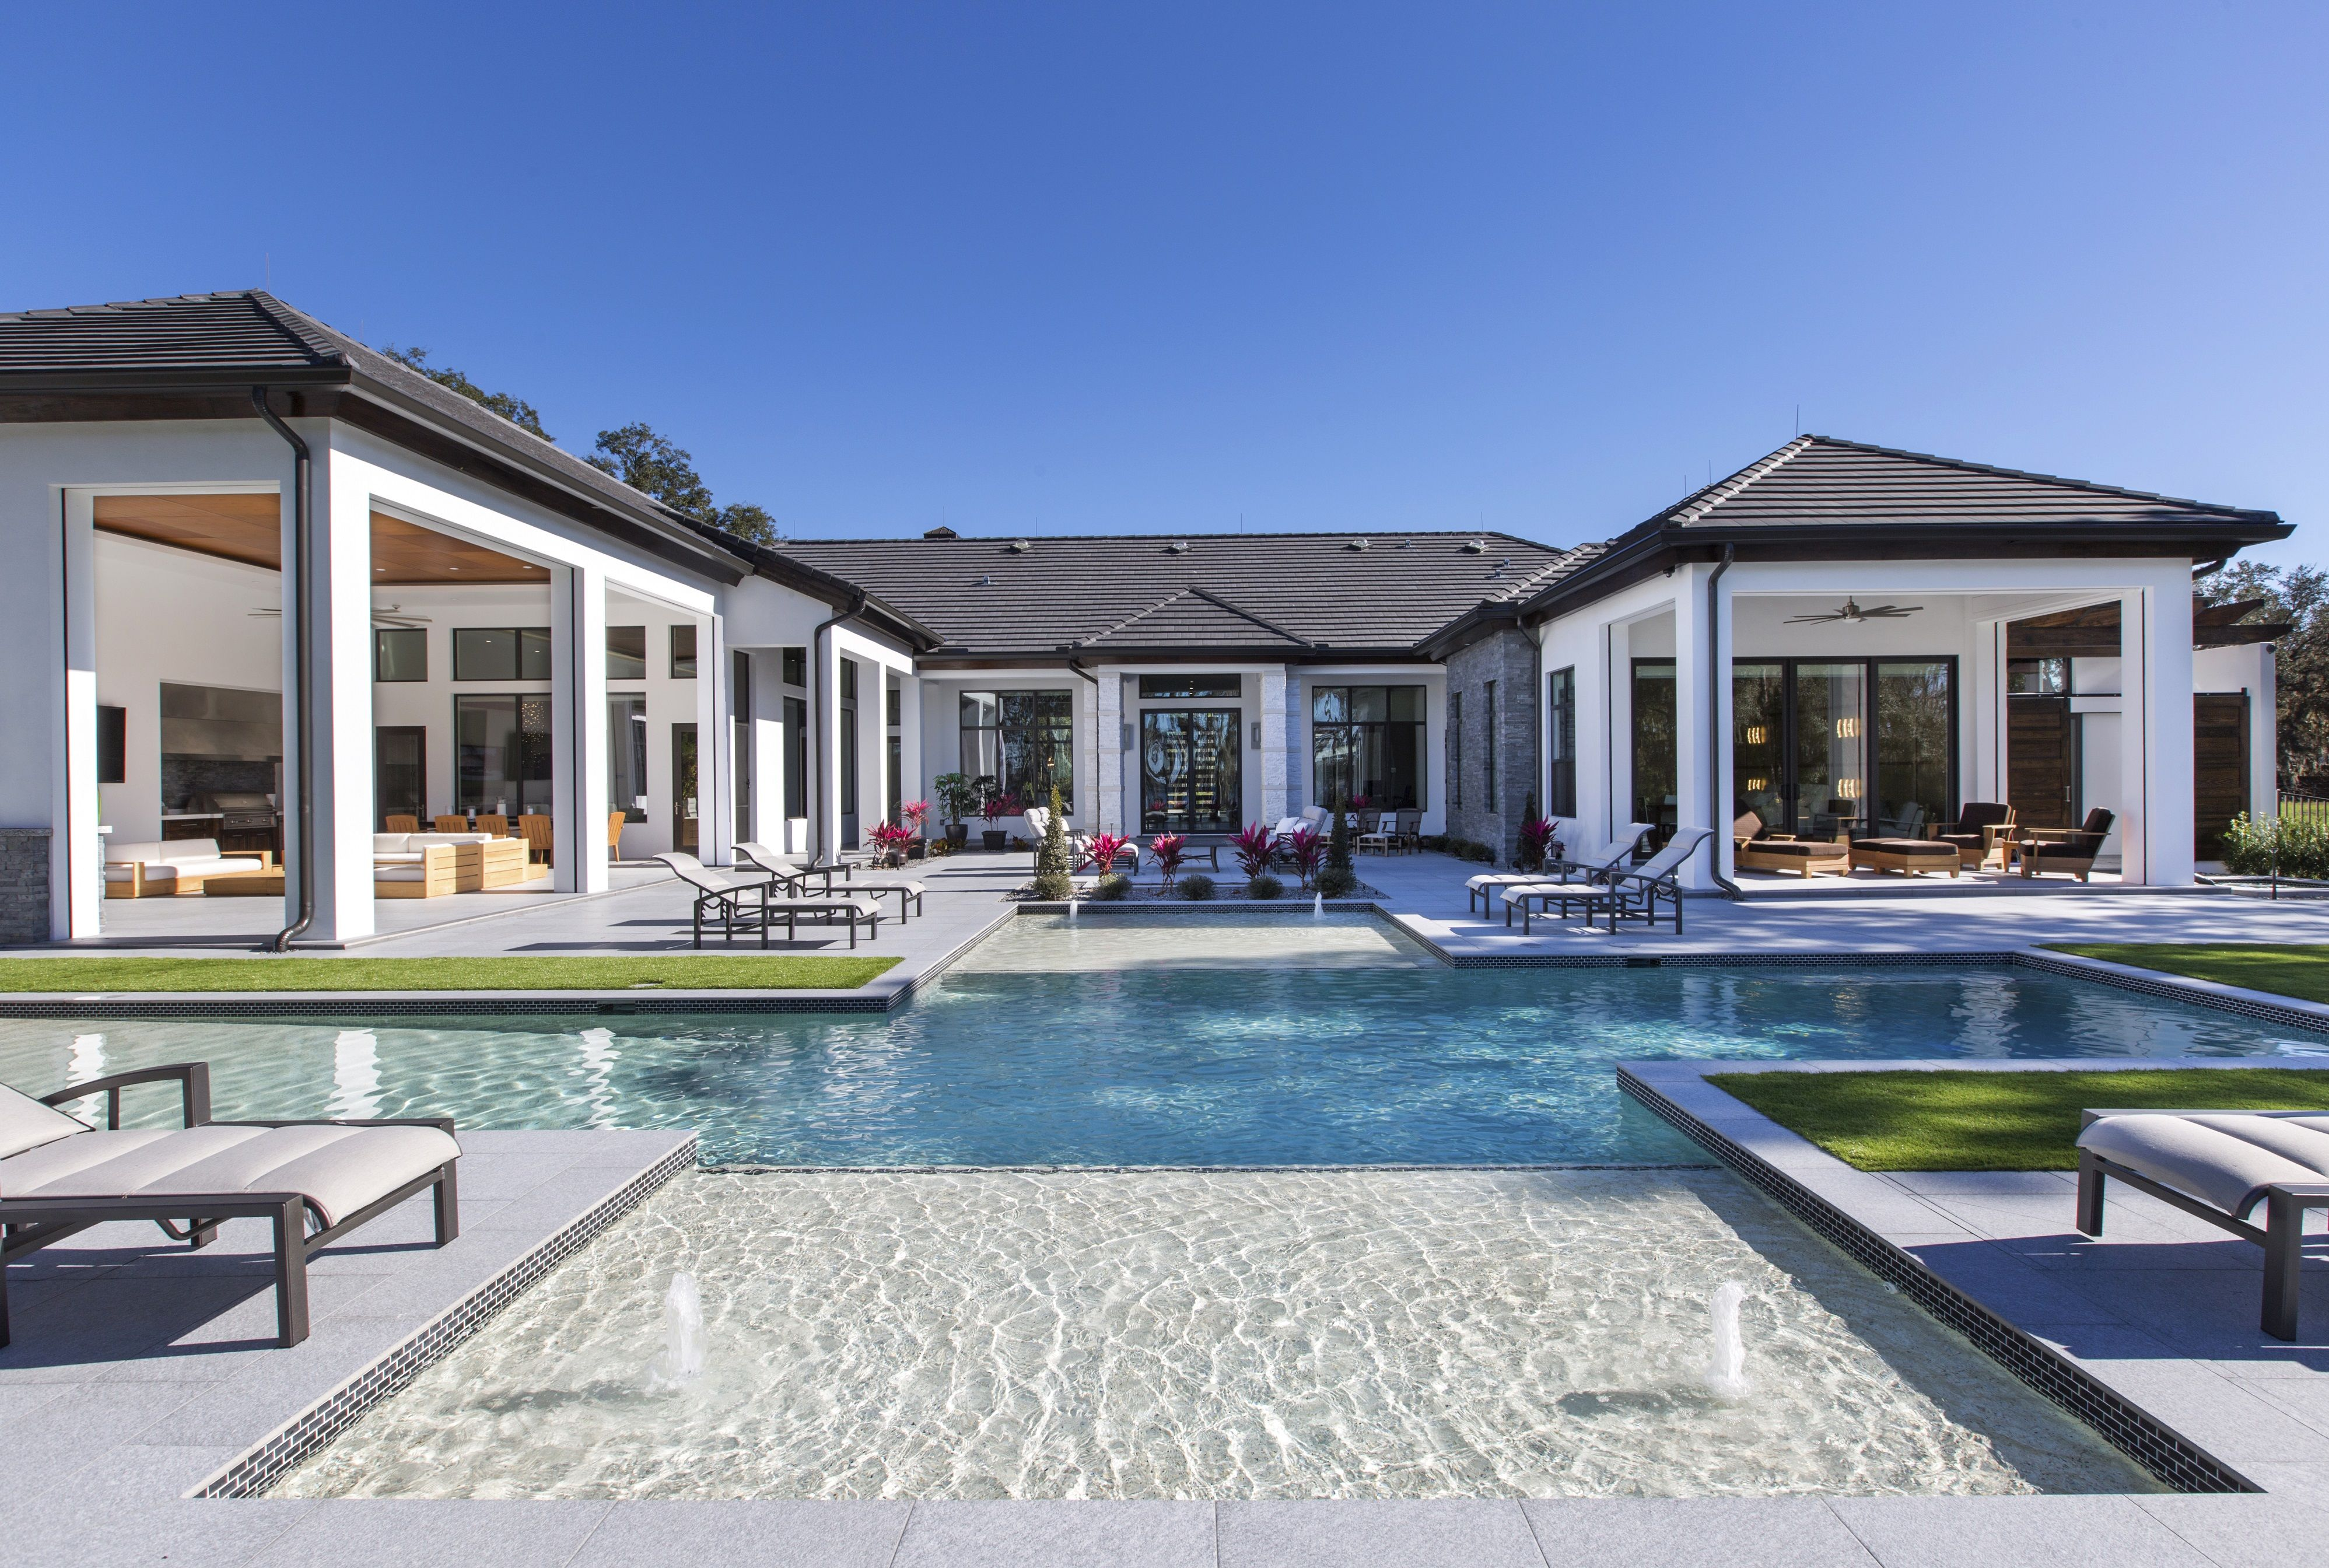 Modern Pool With Room On Your Back Patio To Host Gatherings Makes For Amazing Weekends In Florida Pool House Plans Dream House Exterior Modern Pools